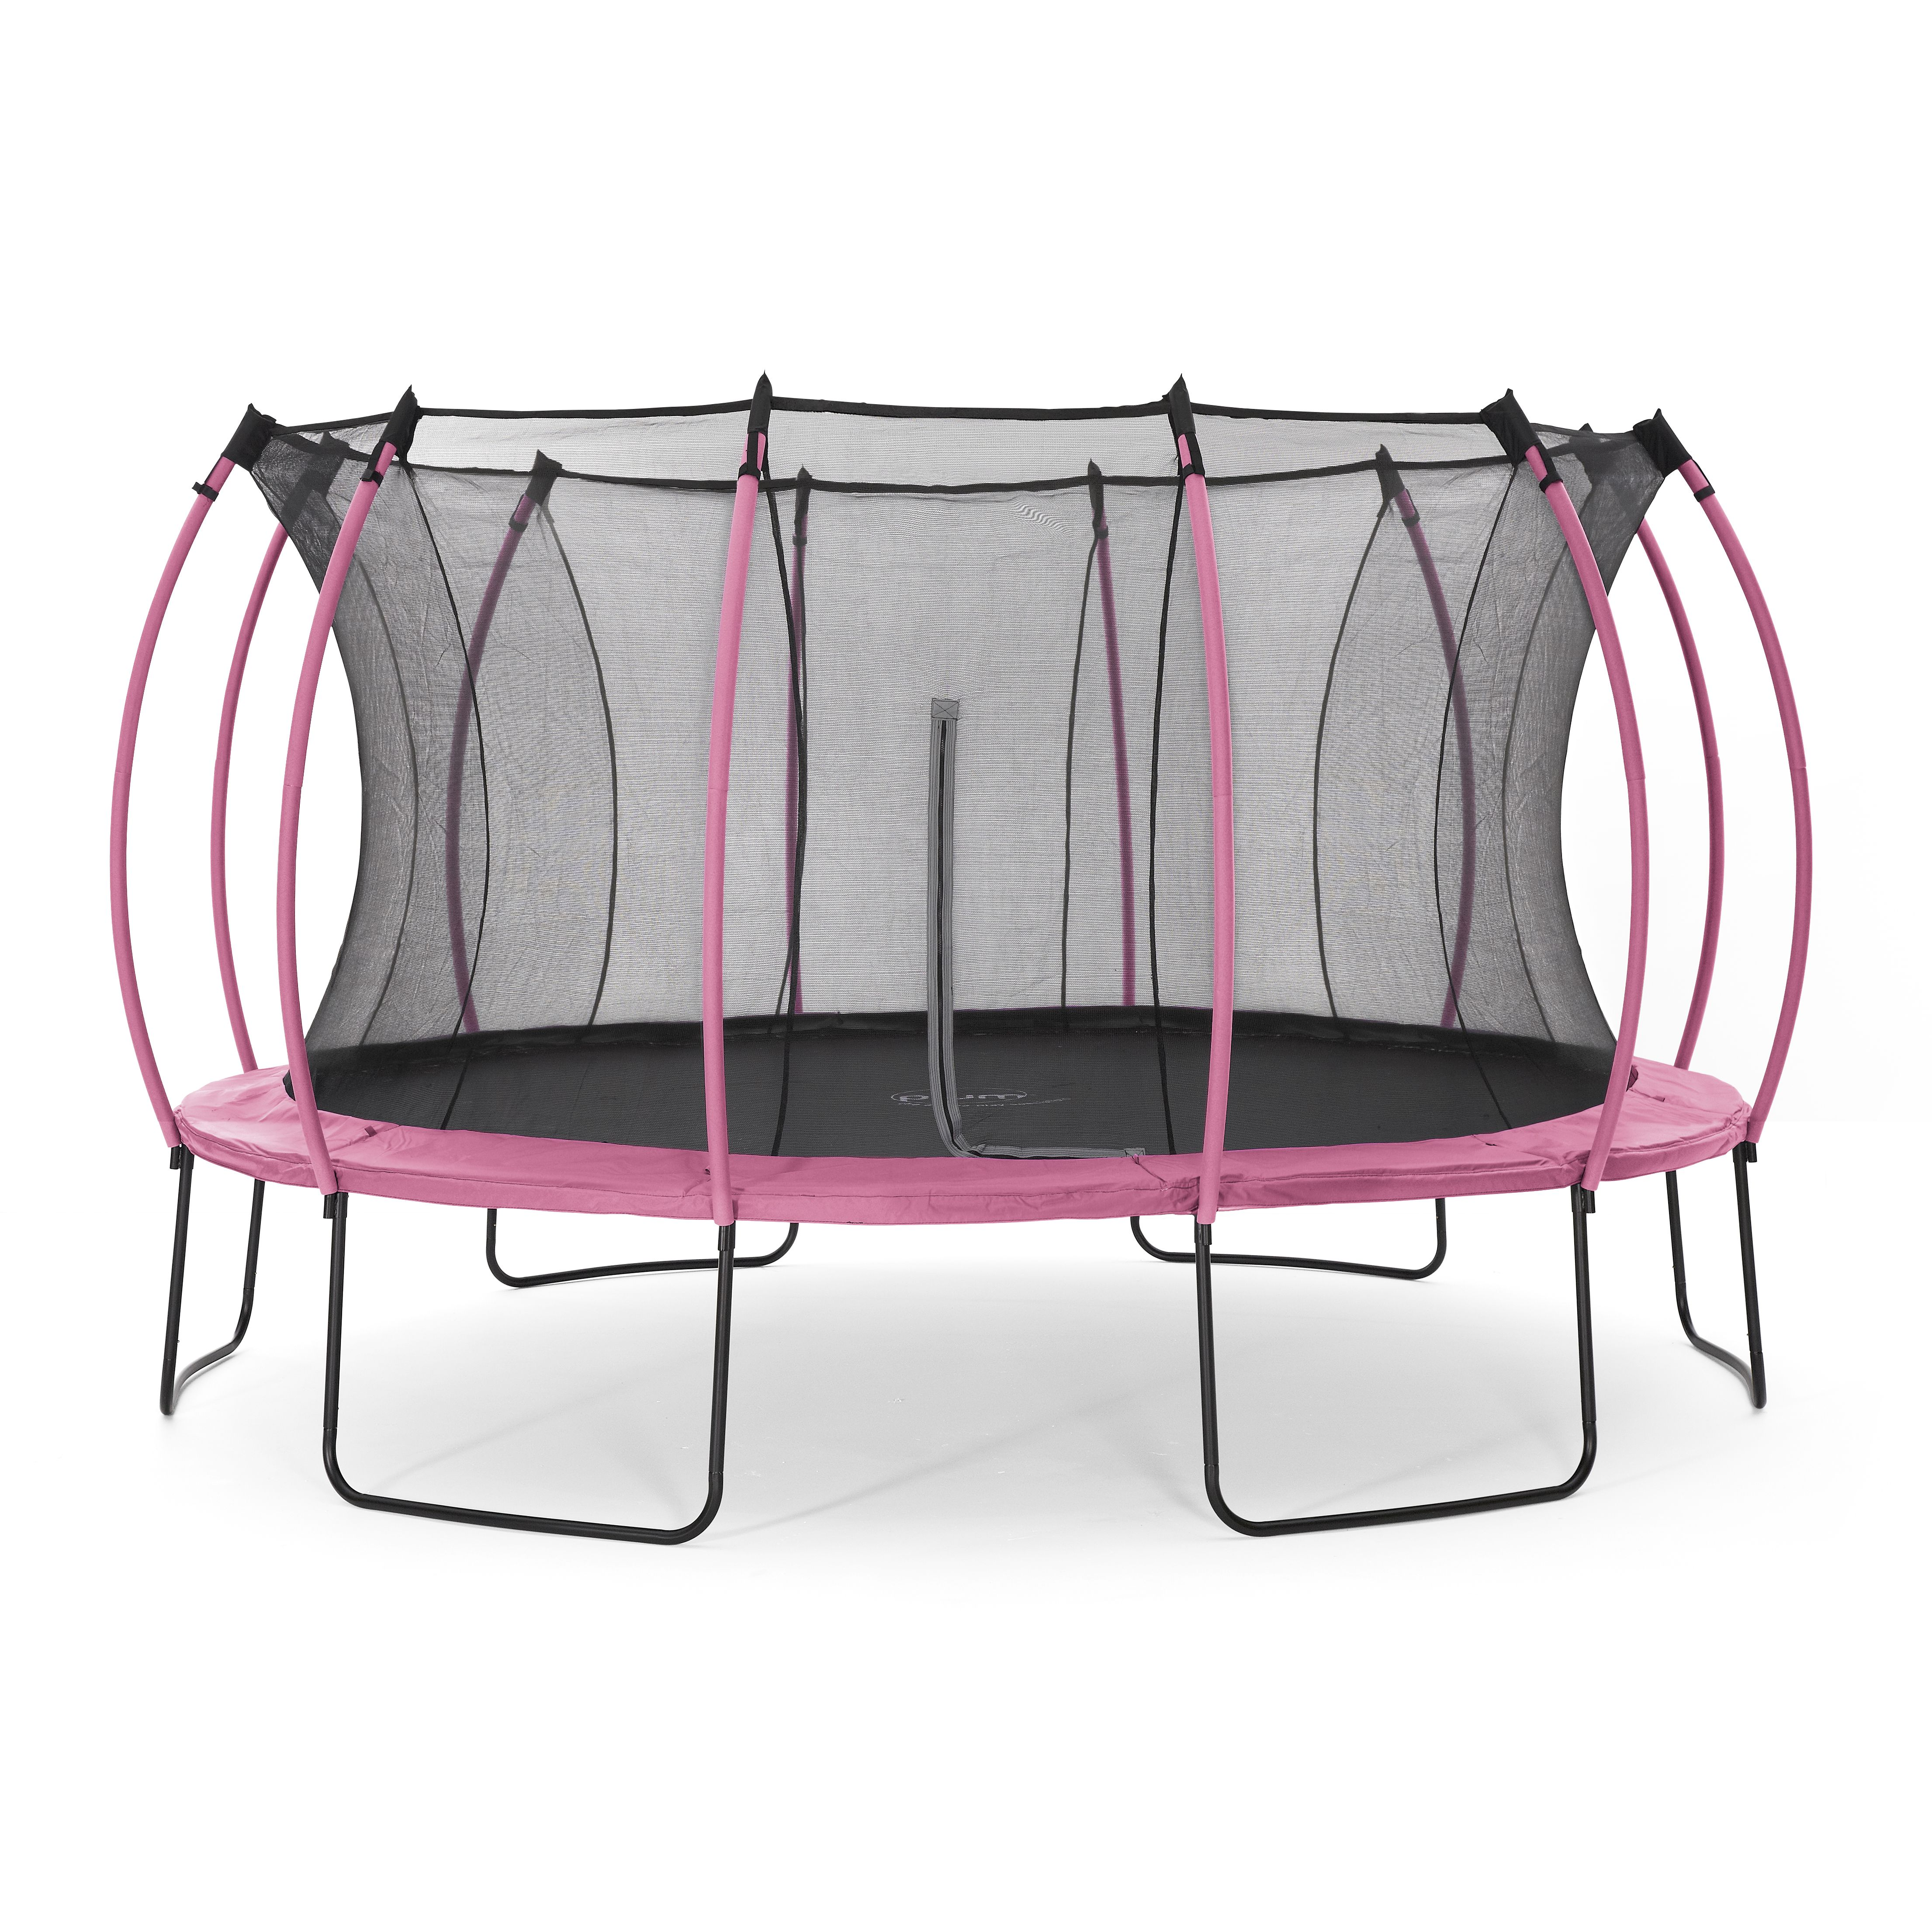 Trampoline Springs B Q: Plum Colours Pink & Turquoise 14ft Trampoline & Enclosure